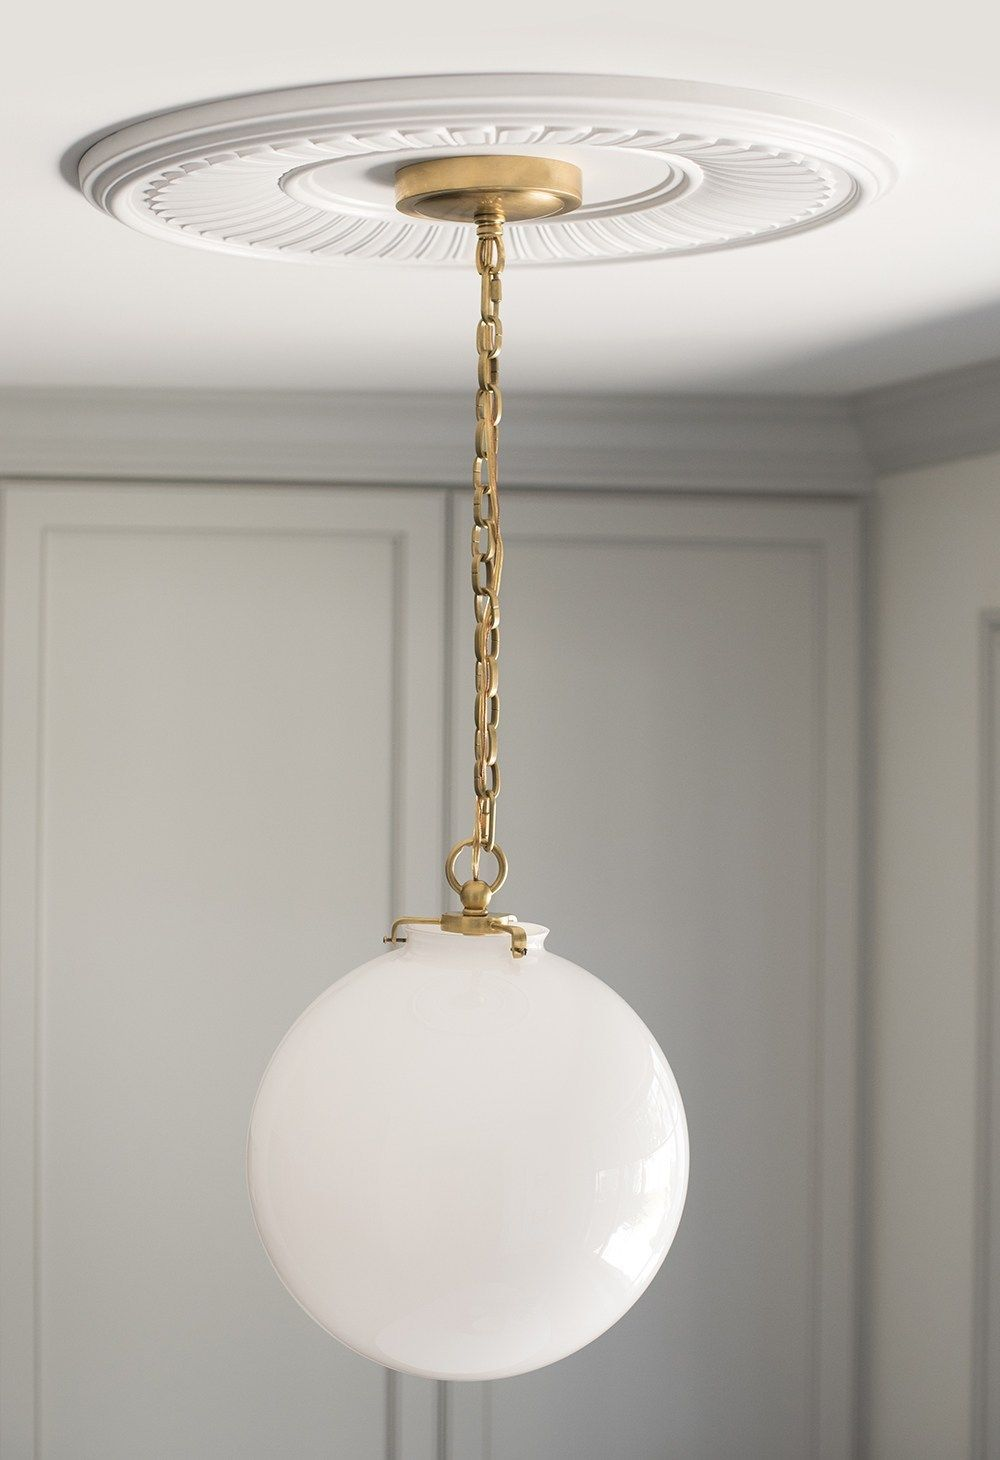 How To Install A Ceiling Medallion Room For Tuesday Ceiling Medallions Modern Ceiling Medallions Ceiling